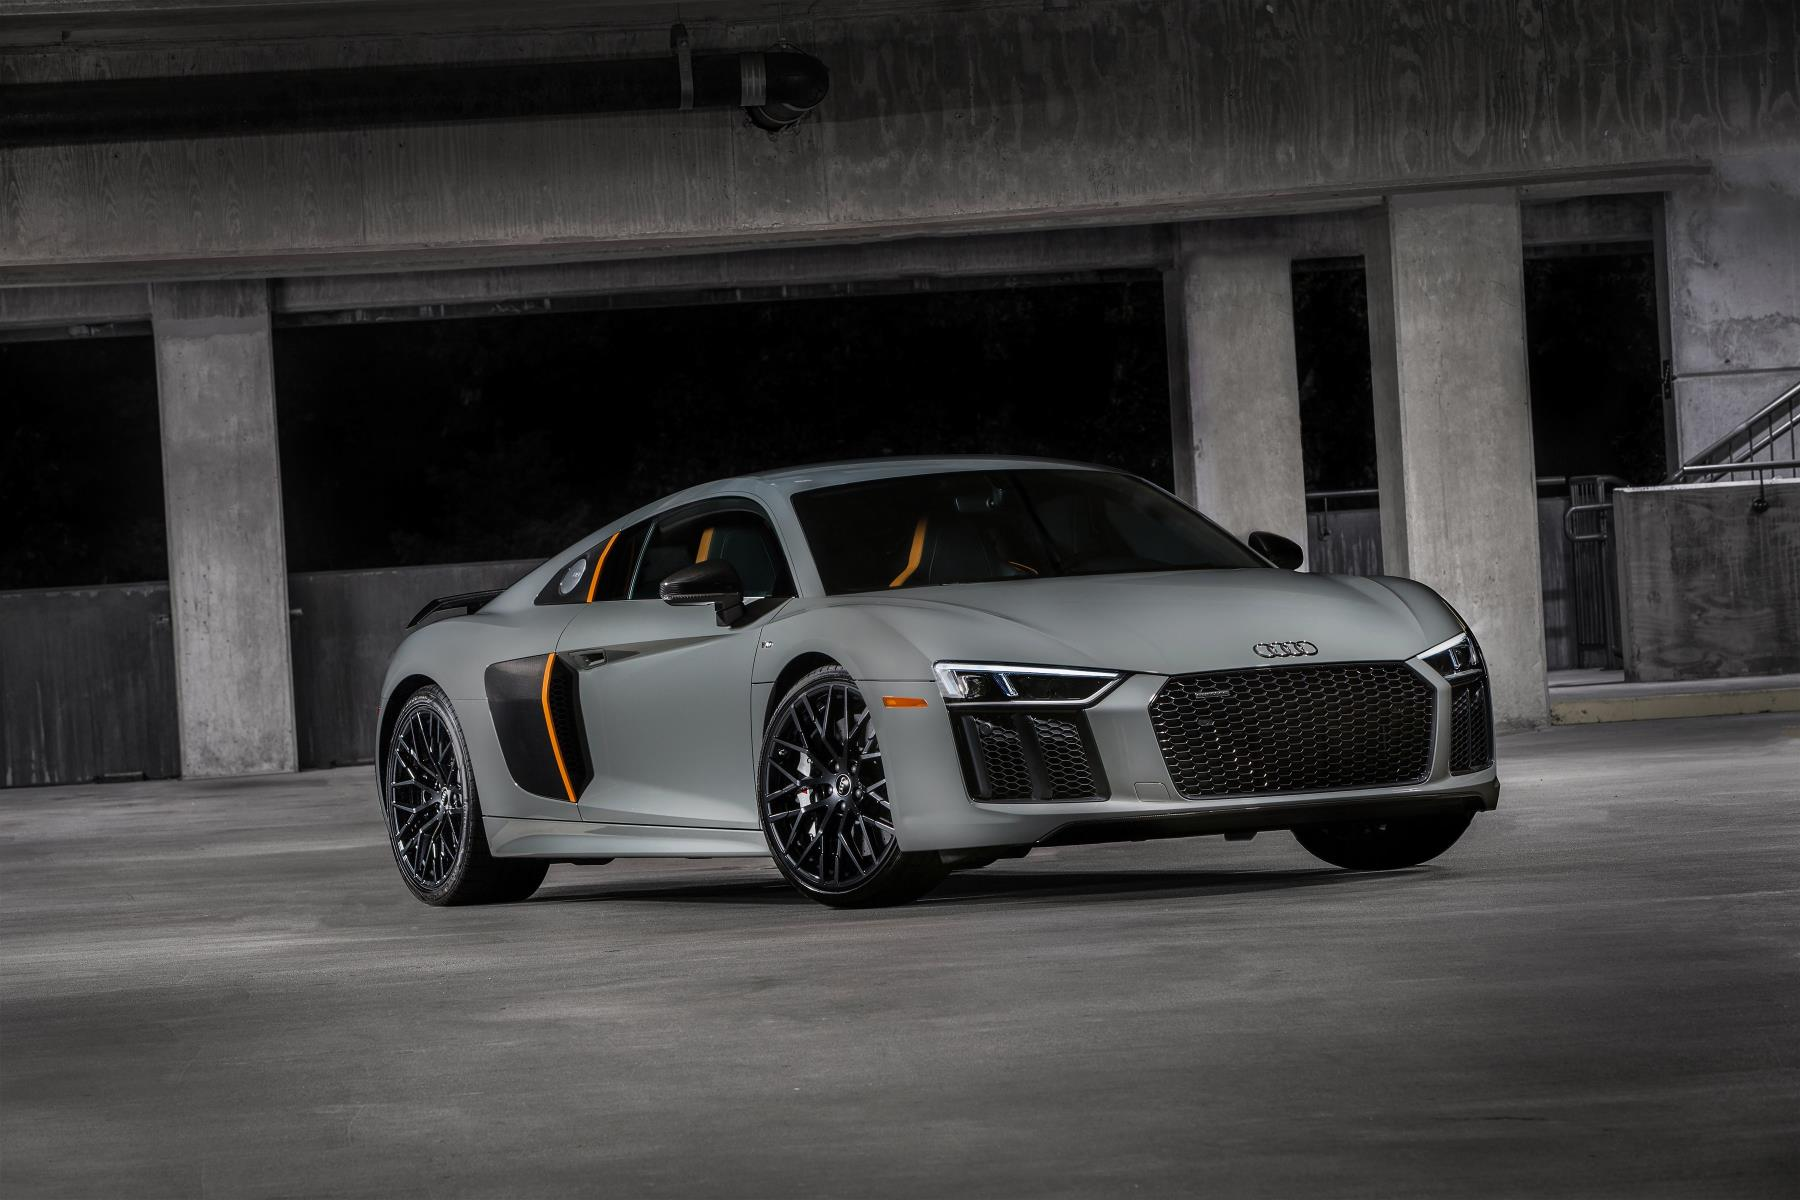 2017 Audi R8 V10 Plus Finally Gets Laser Headlights In The